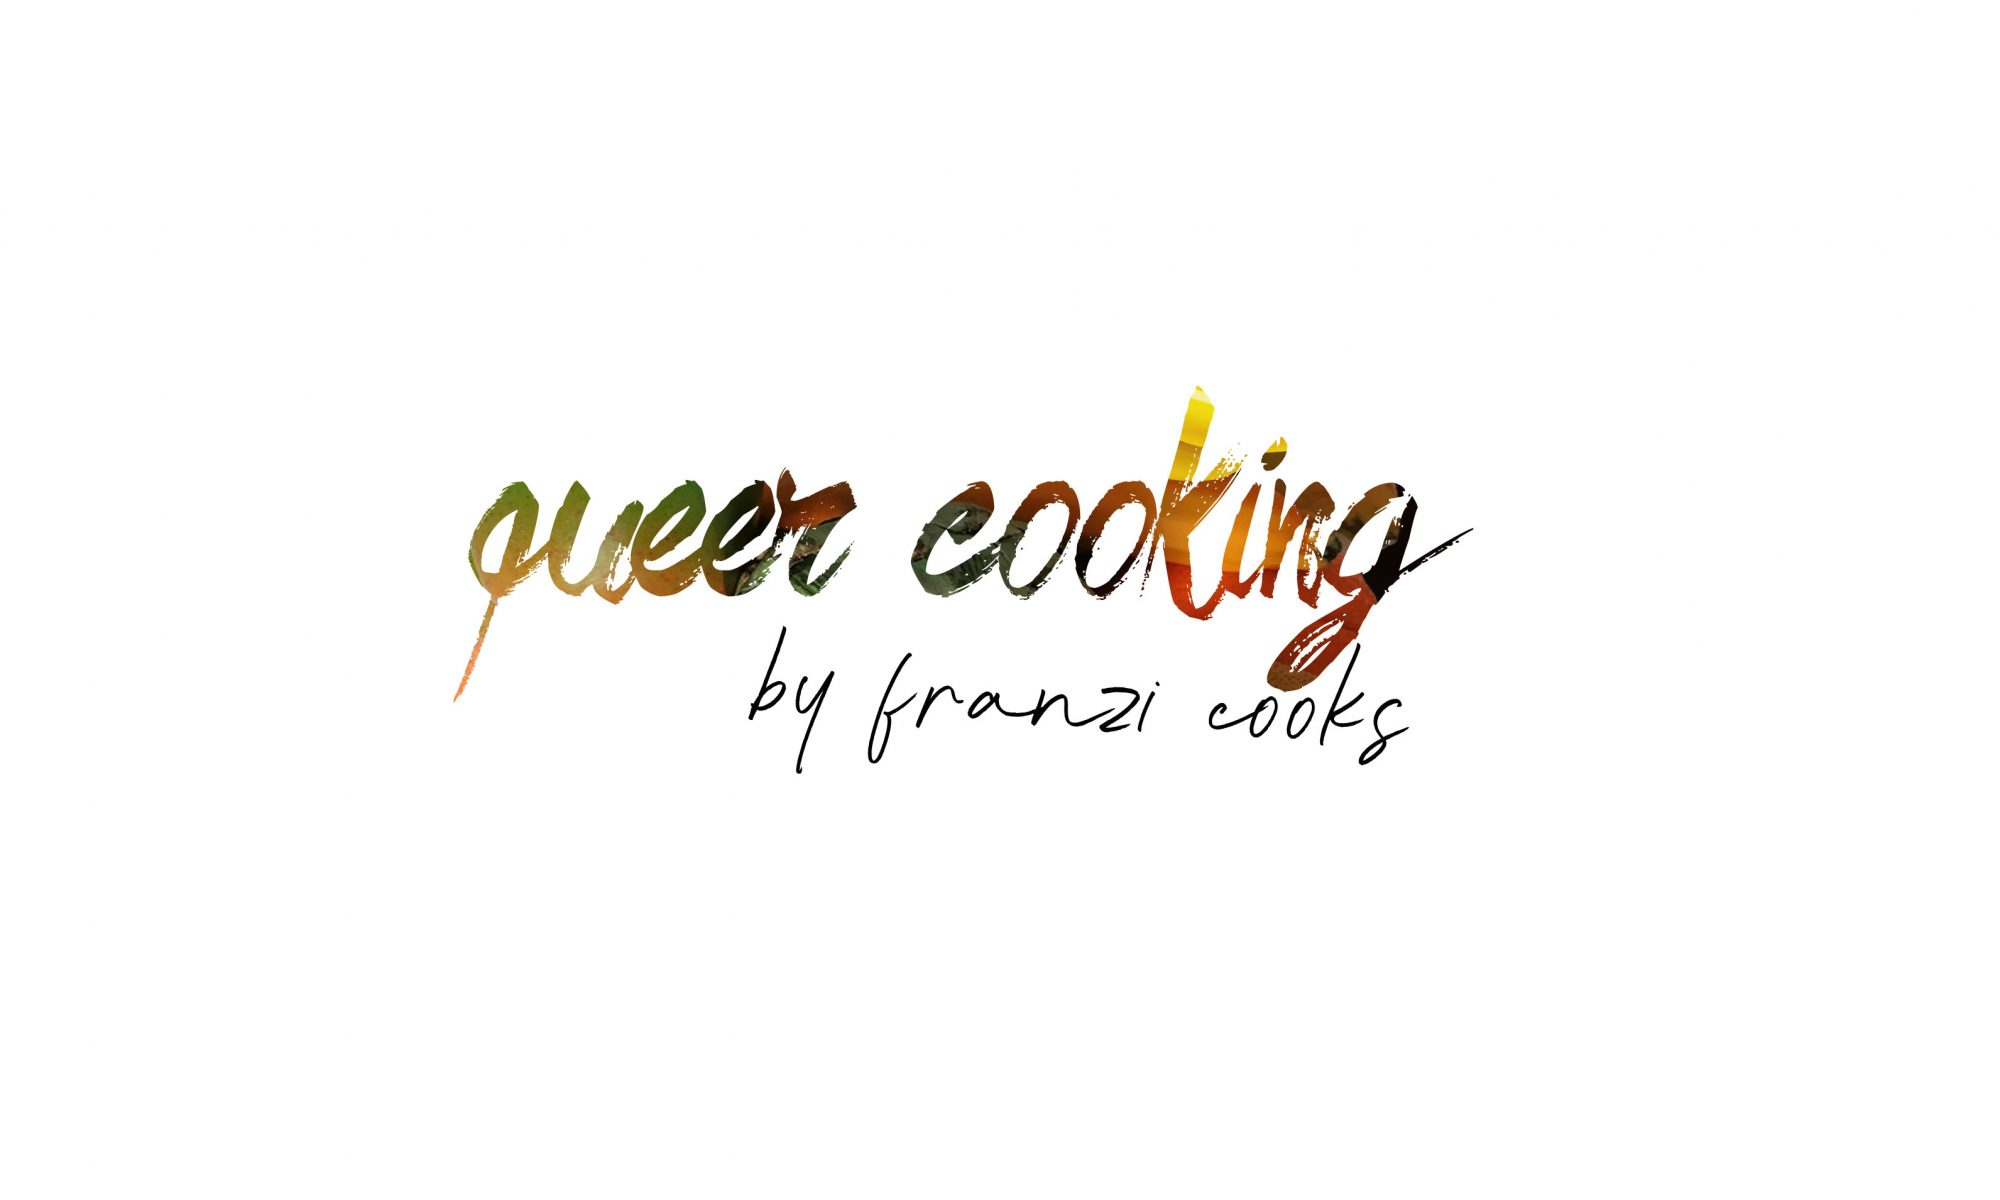 Queer Cooking by Franzi Cooks